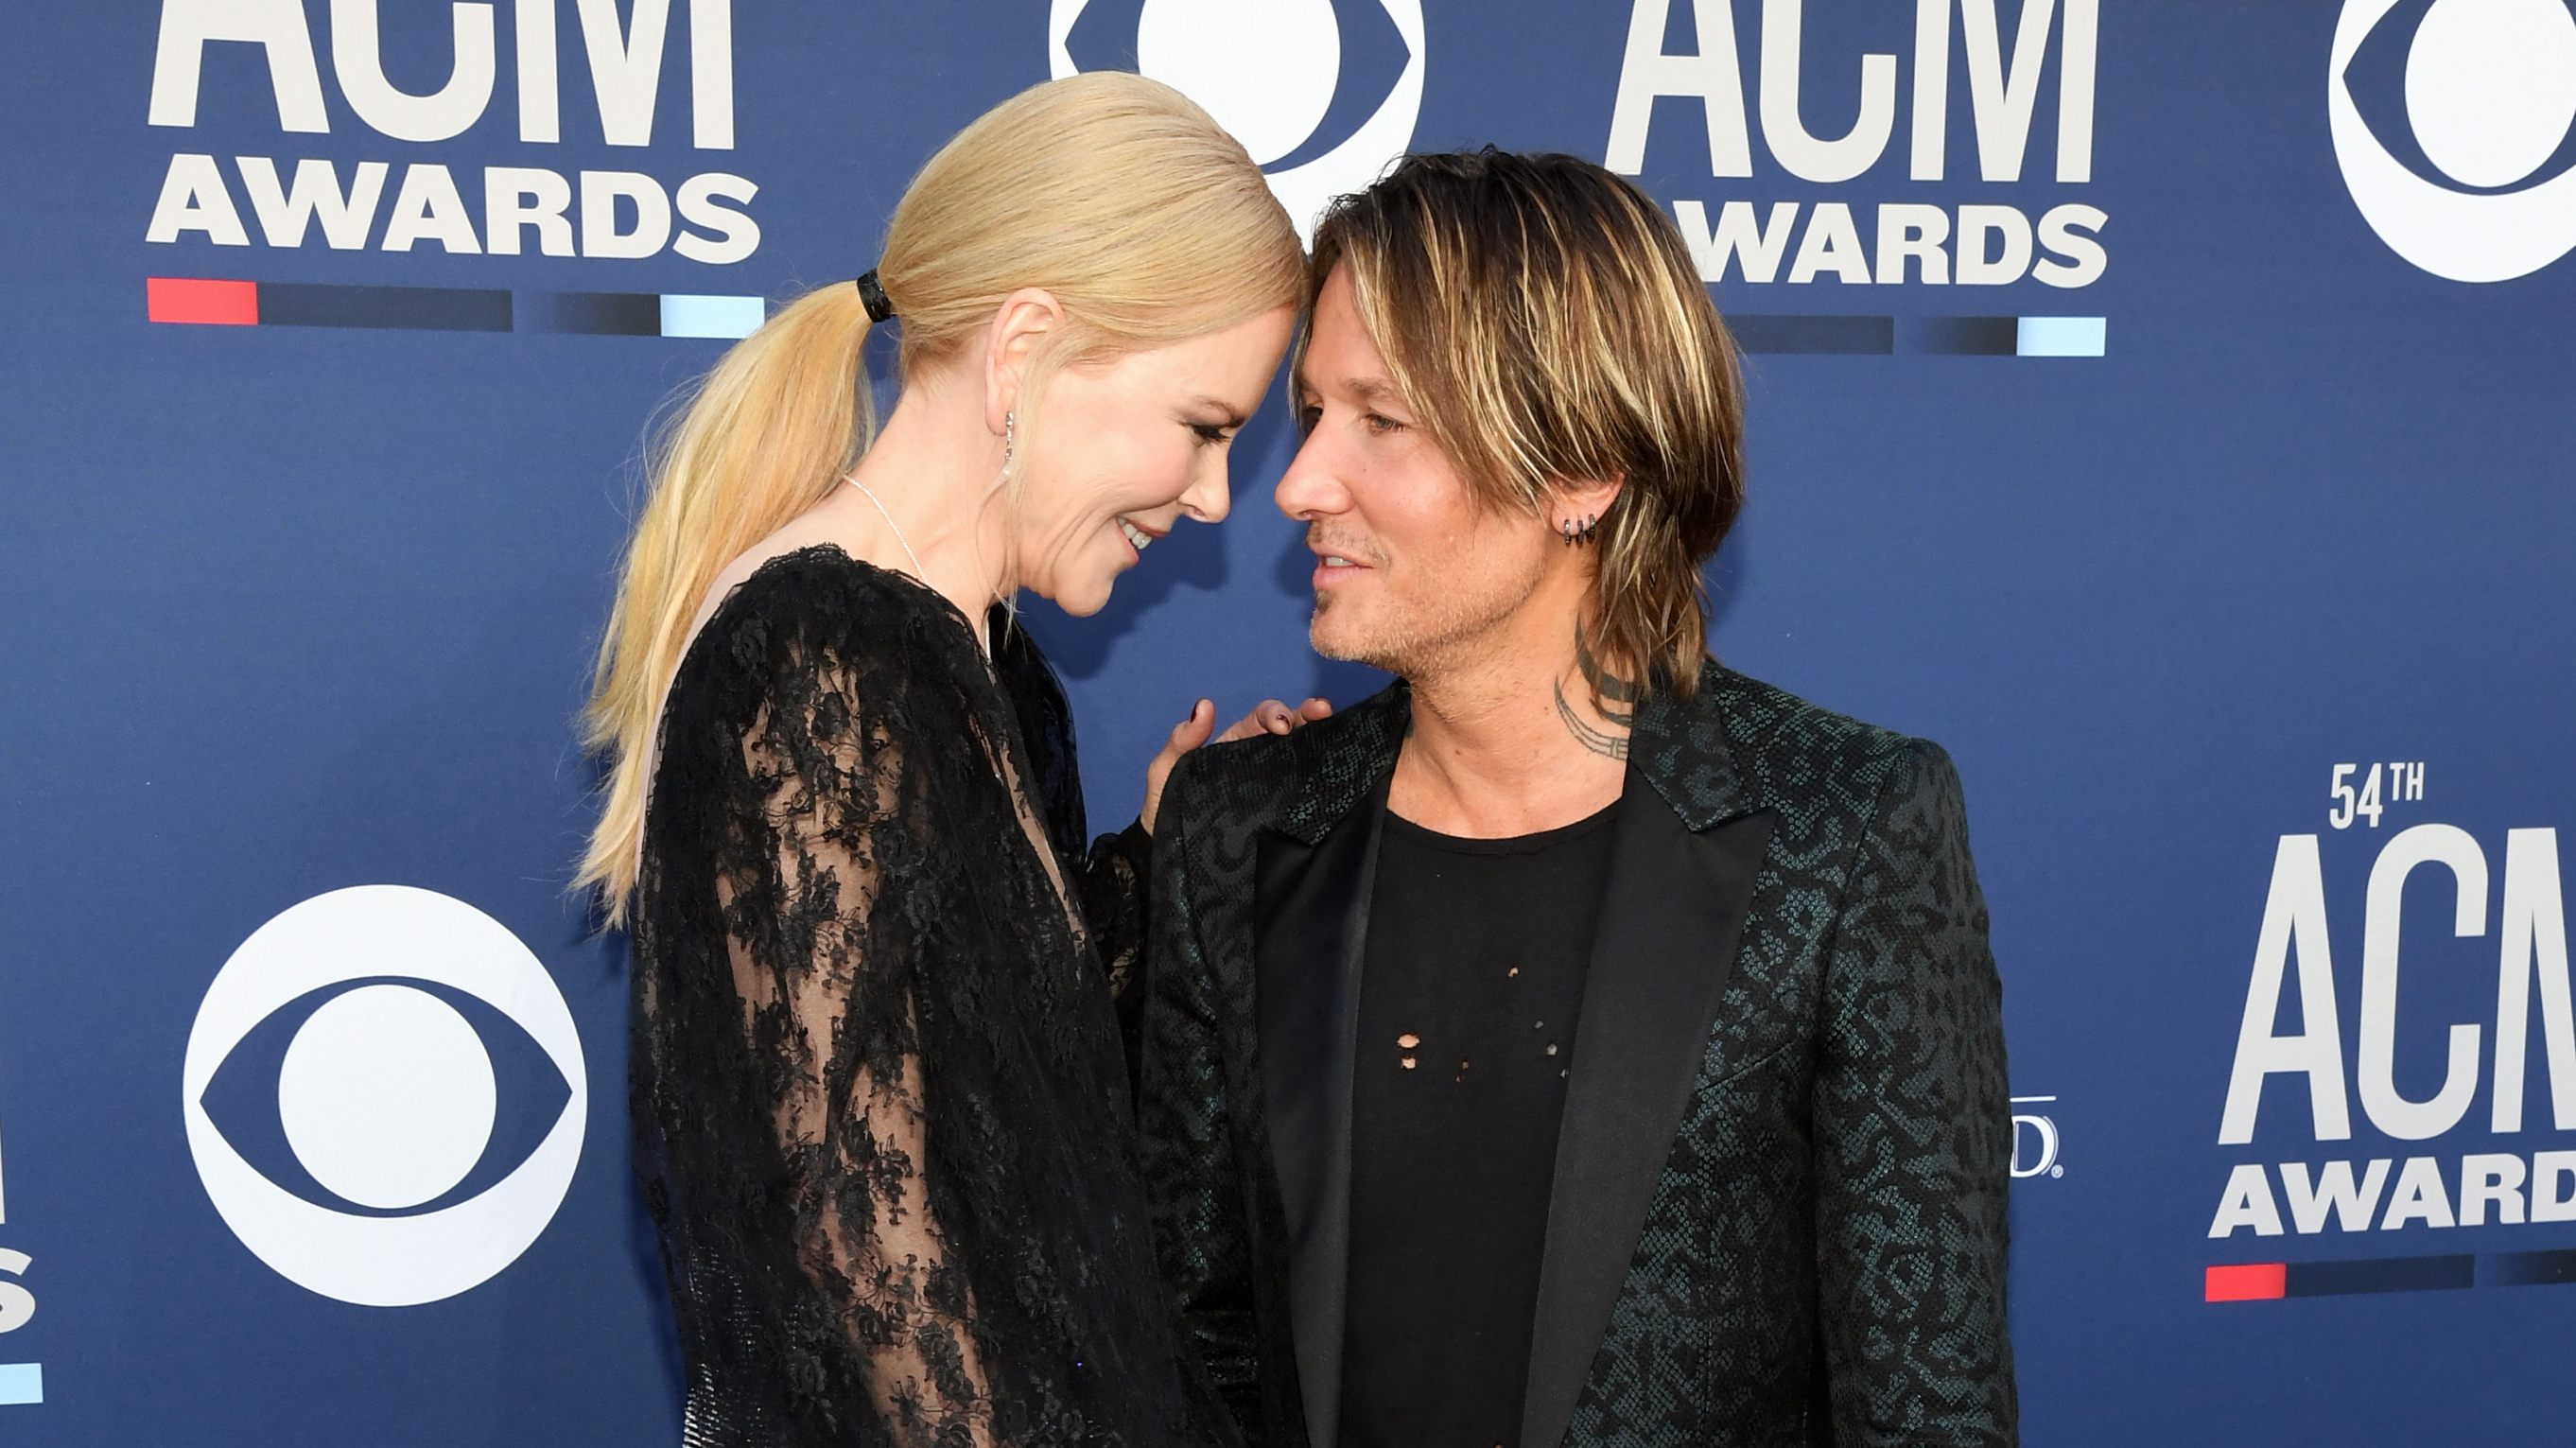 Nicole Kidman From Keith Urban: Flipboard: Keith Urban Gives Chilling Performance Of